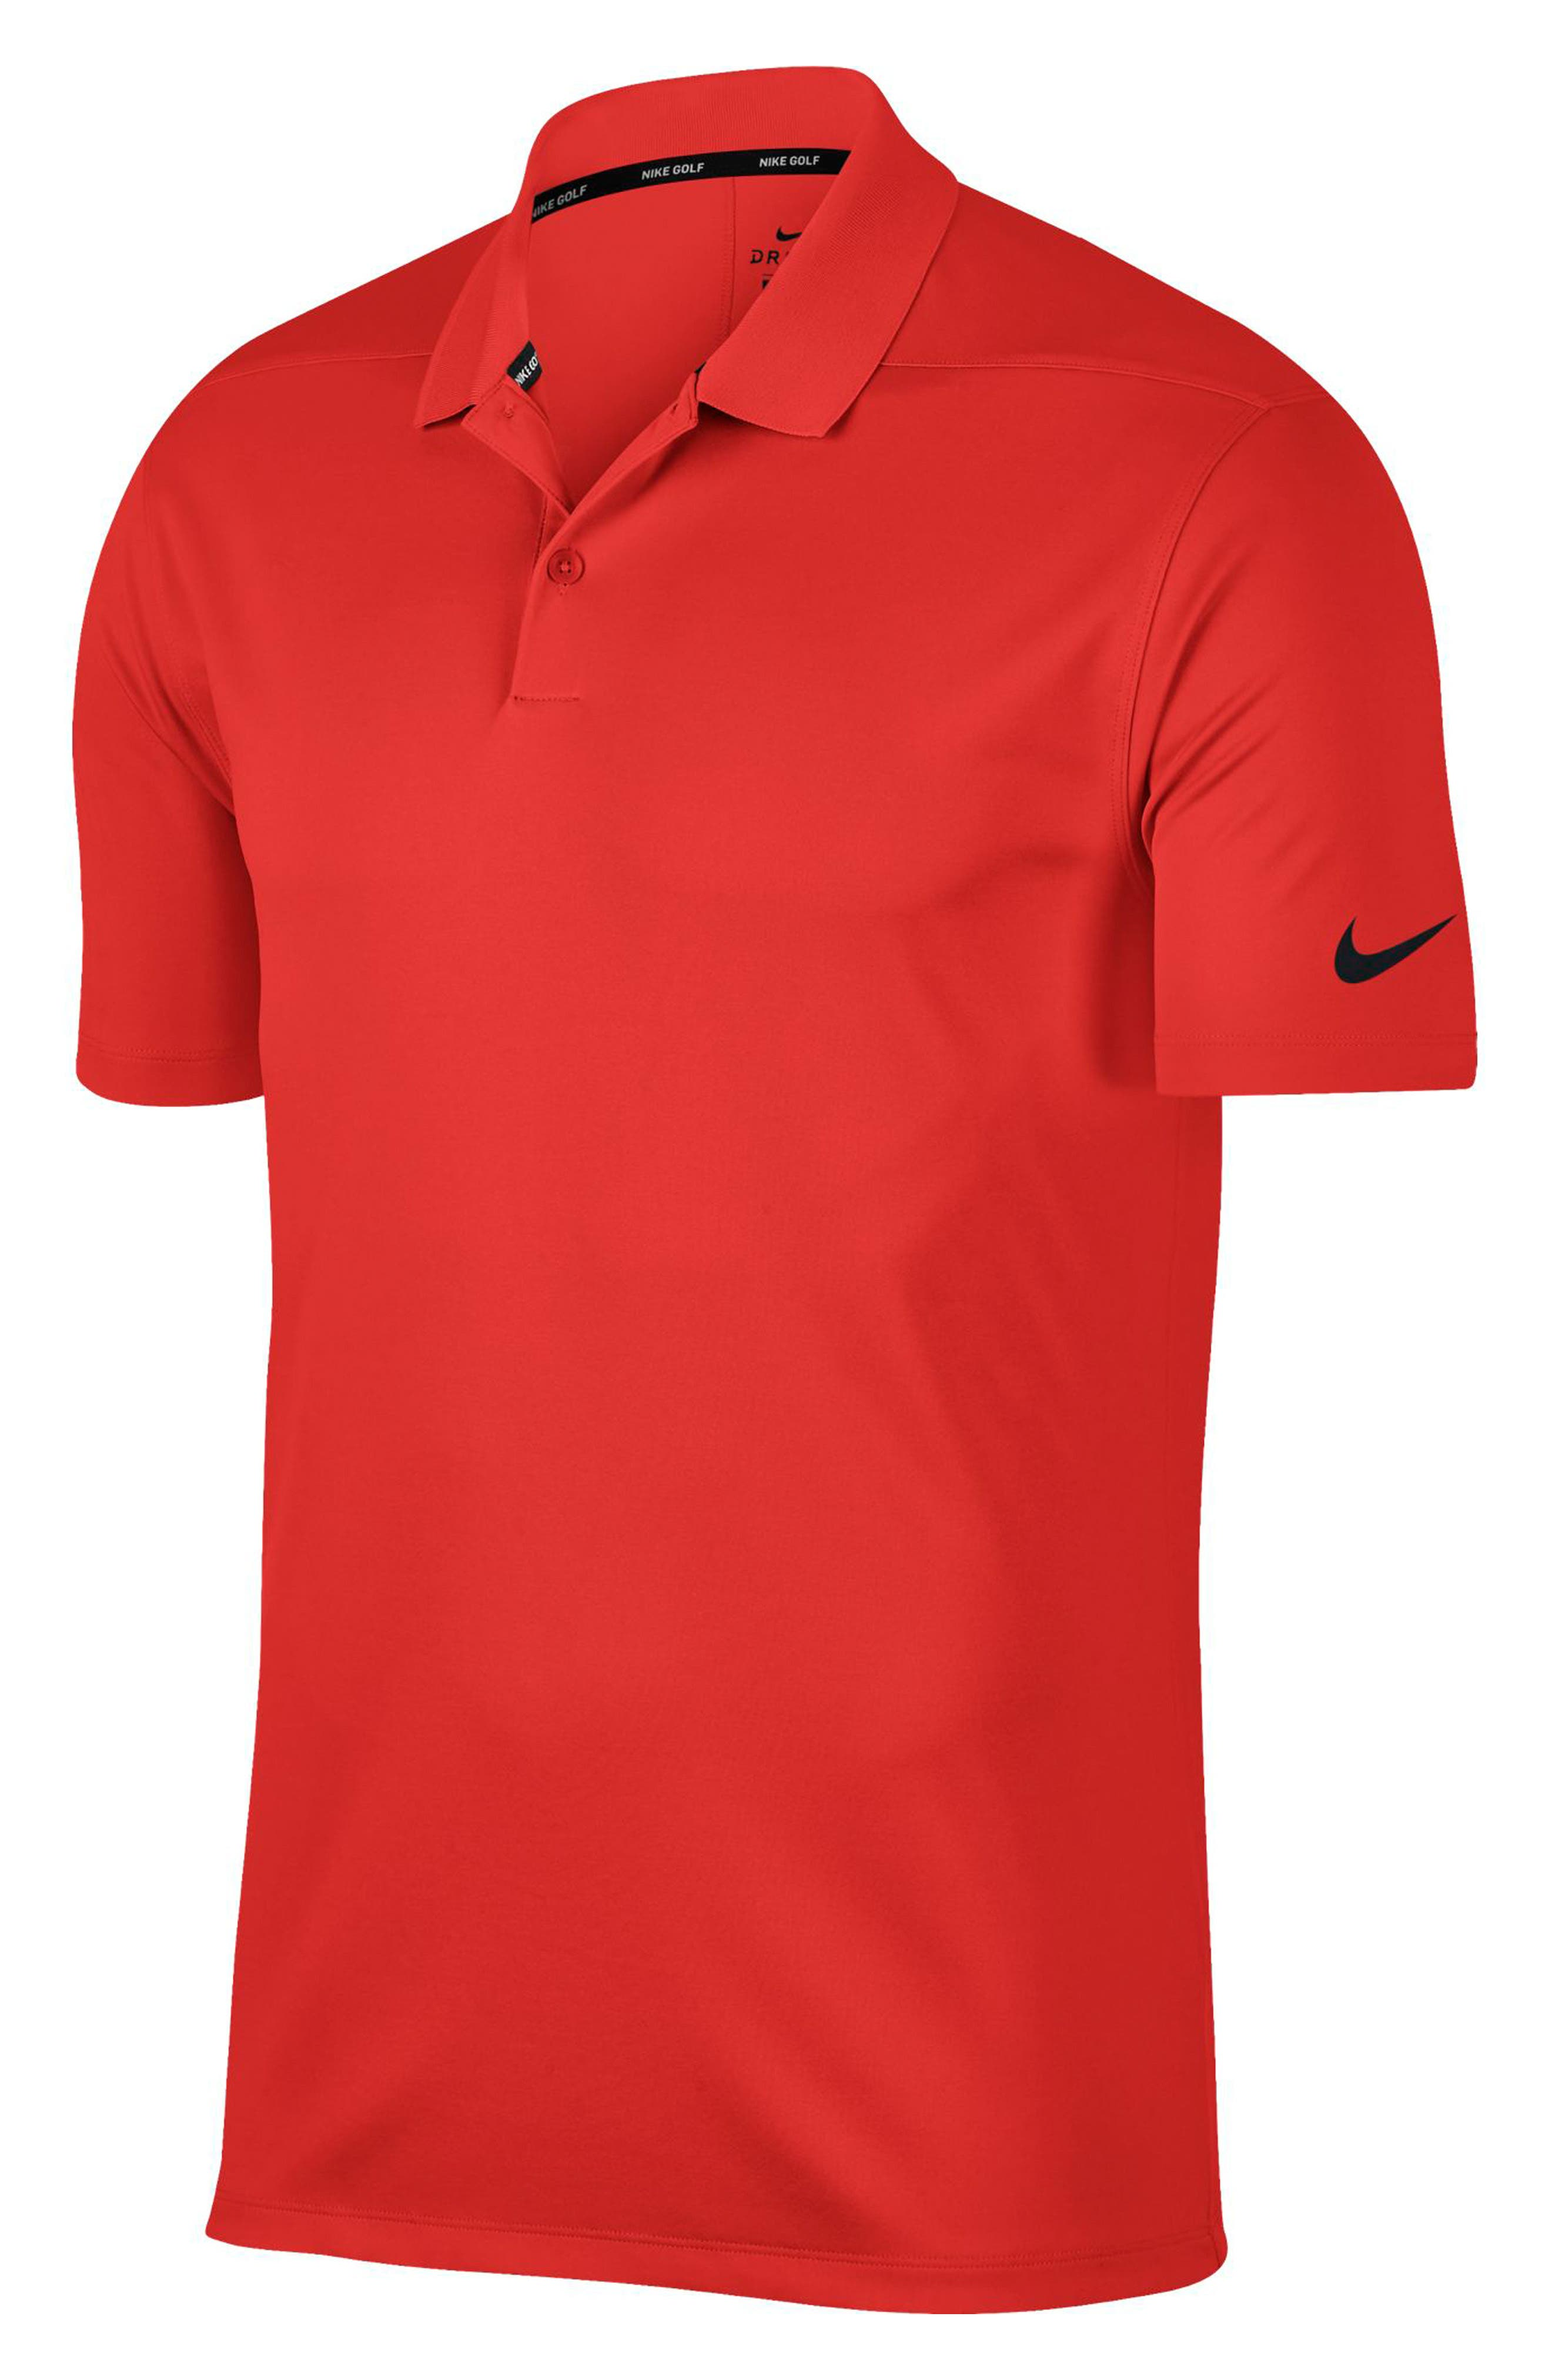 0dc5a84d0 nike polo shirts | Nordstrom